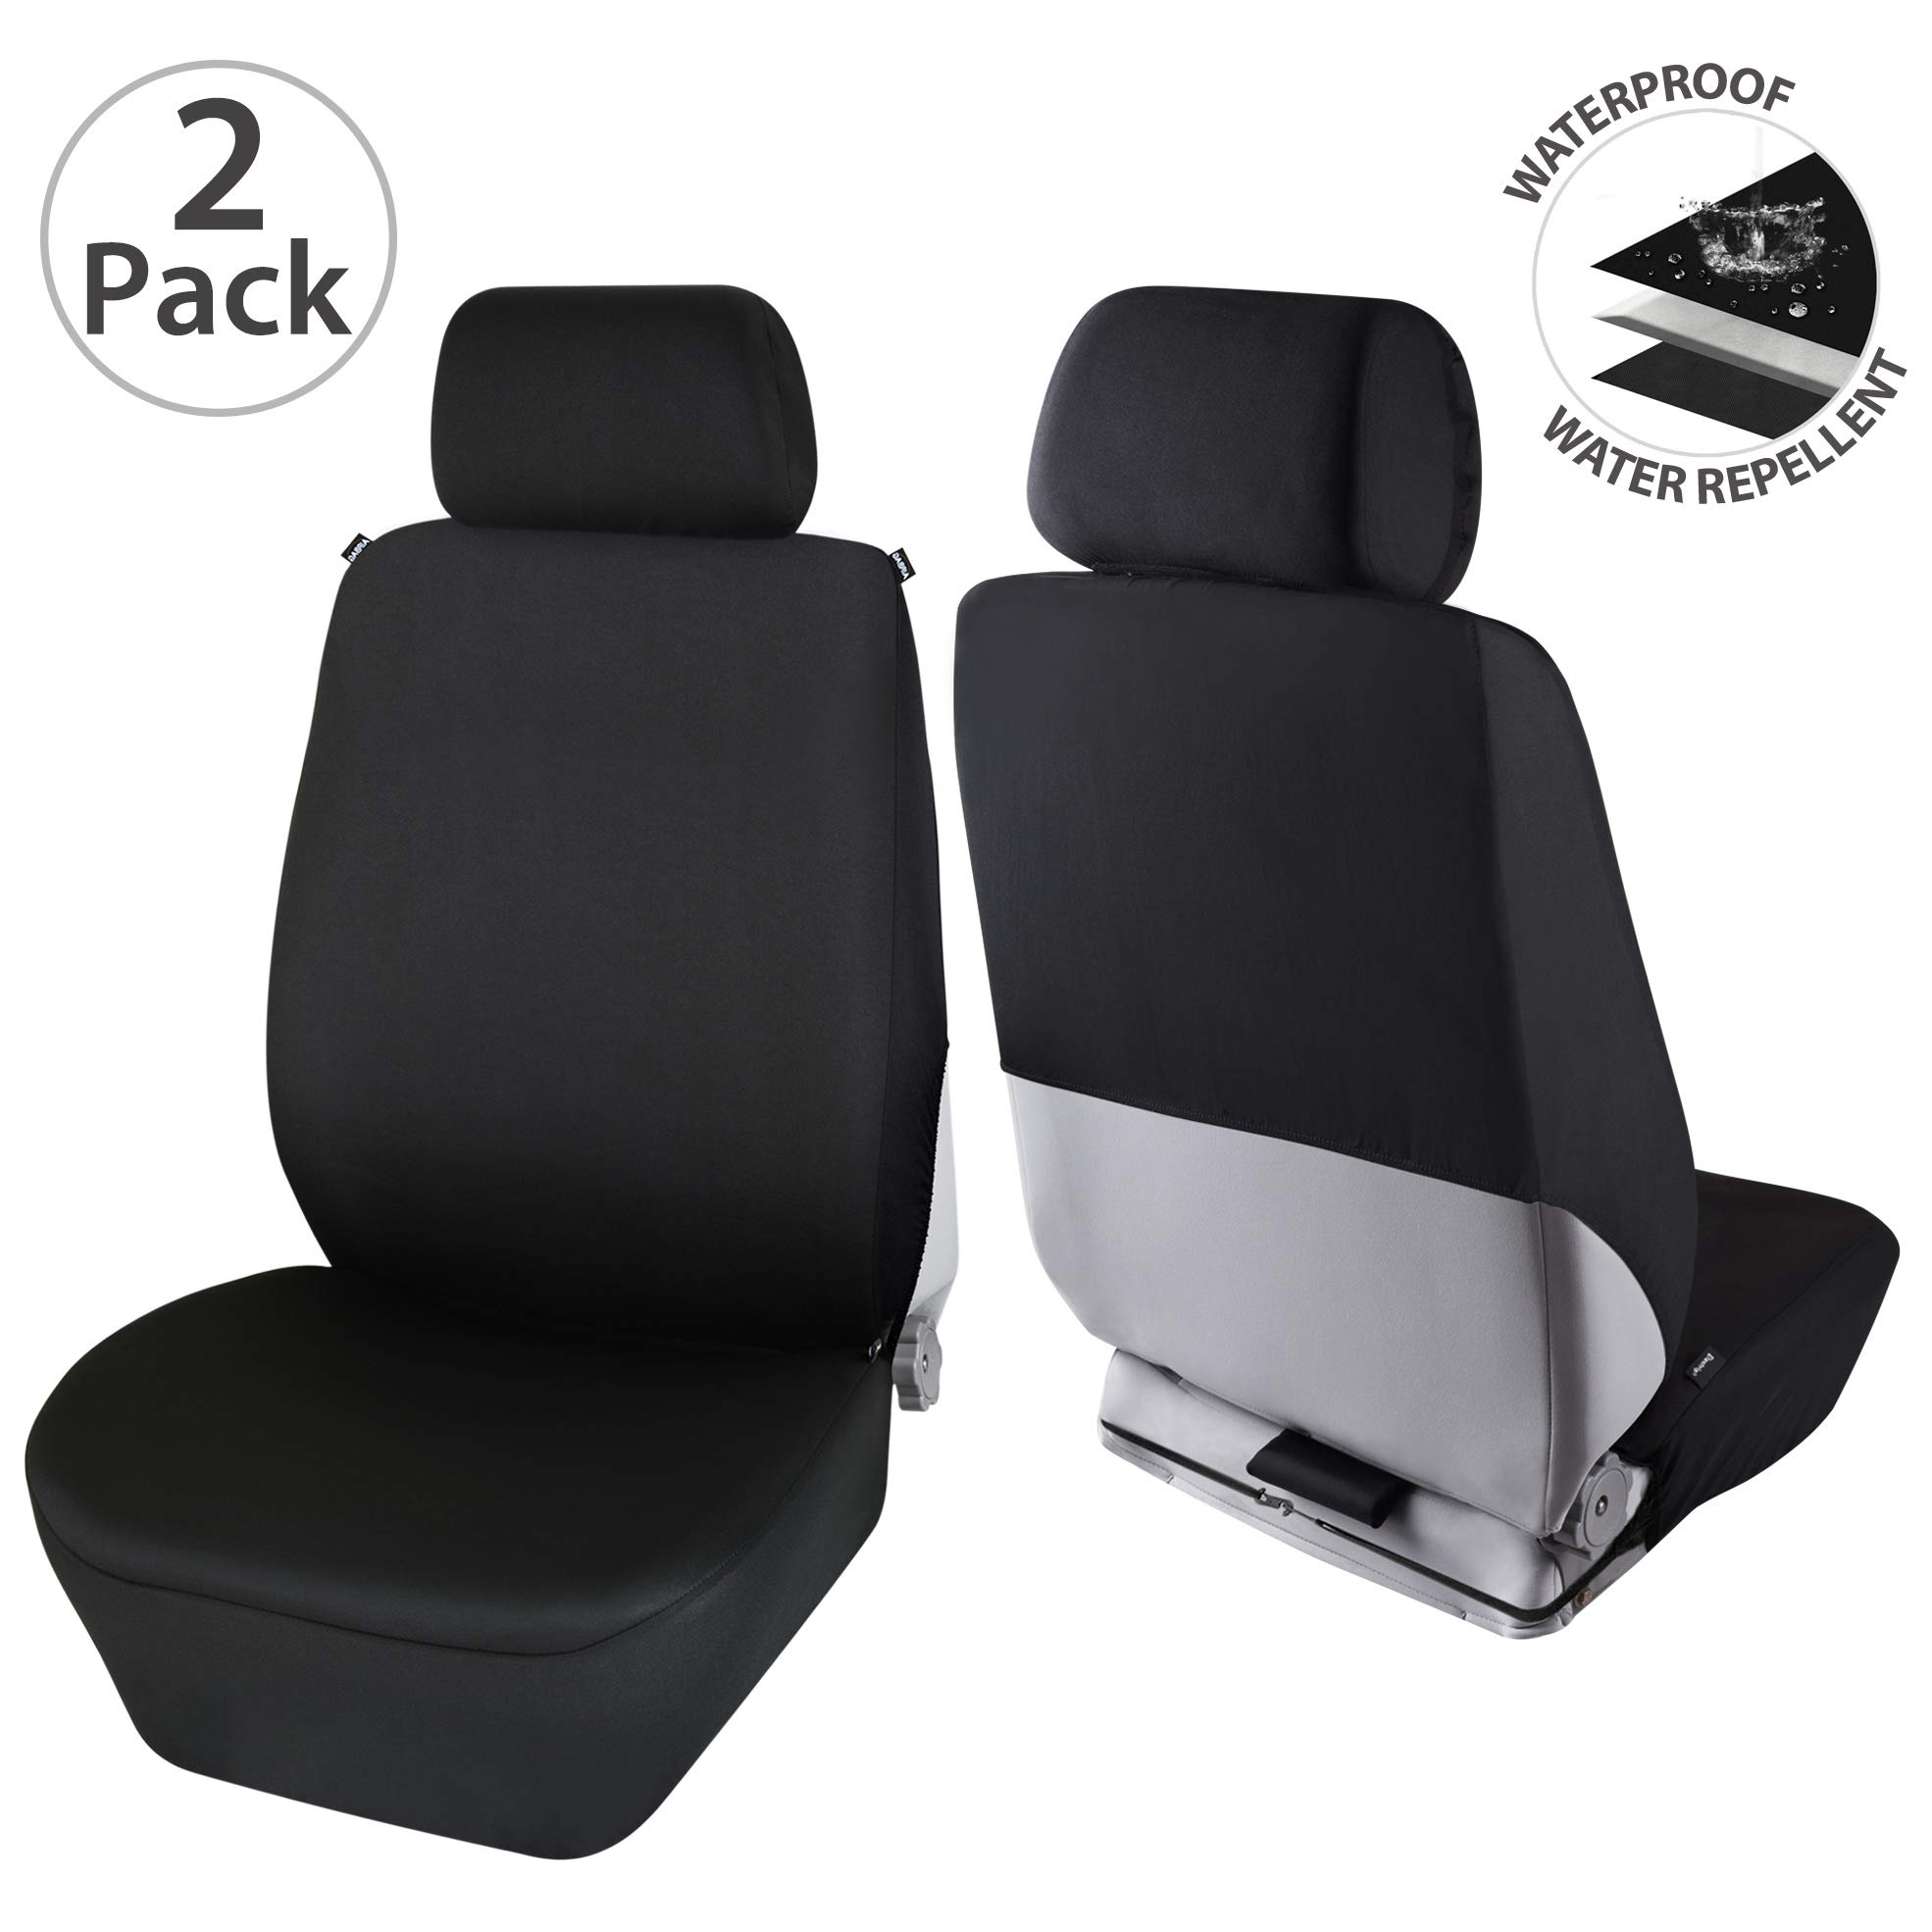 Elantrip Waterproof Neoprene Front Seat Covers Semi Back Universal Fit Water Repellent Bucket Car Seat Protector Airbag Compatible for Auto SUV Truck Van Black 2 PC by Elantrip